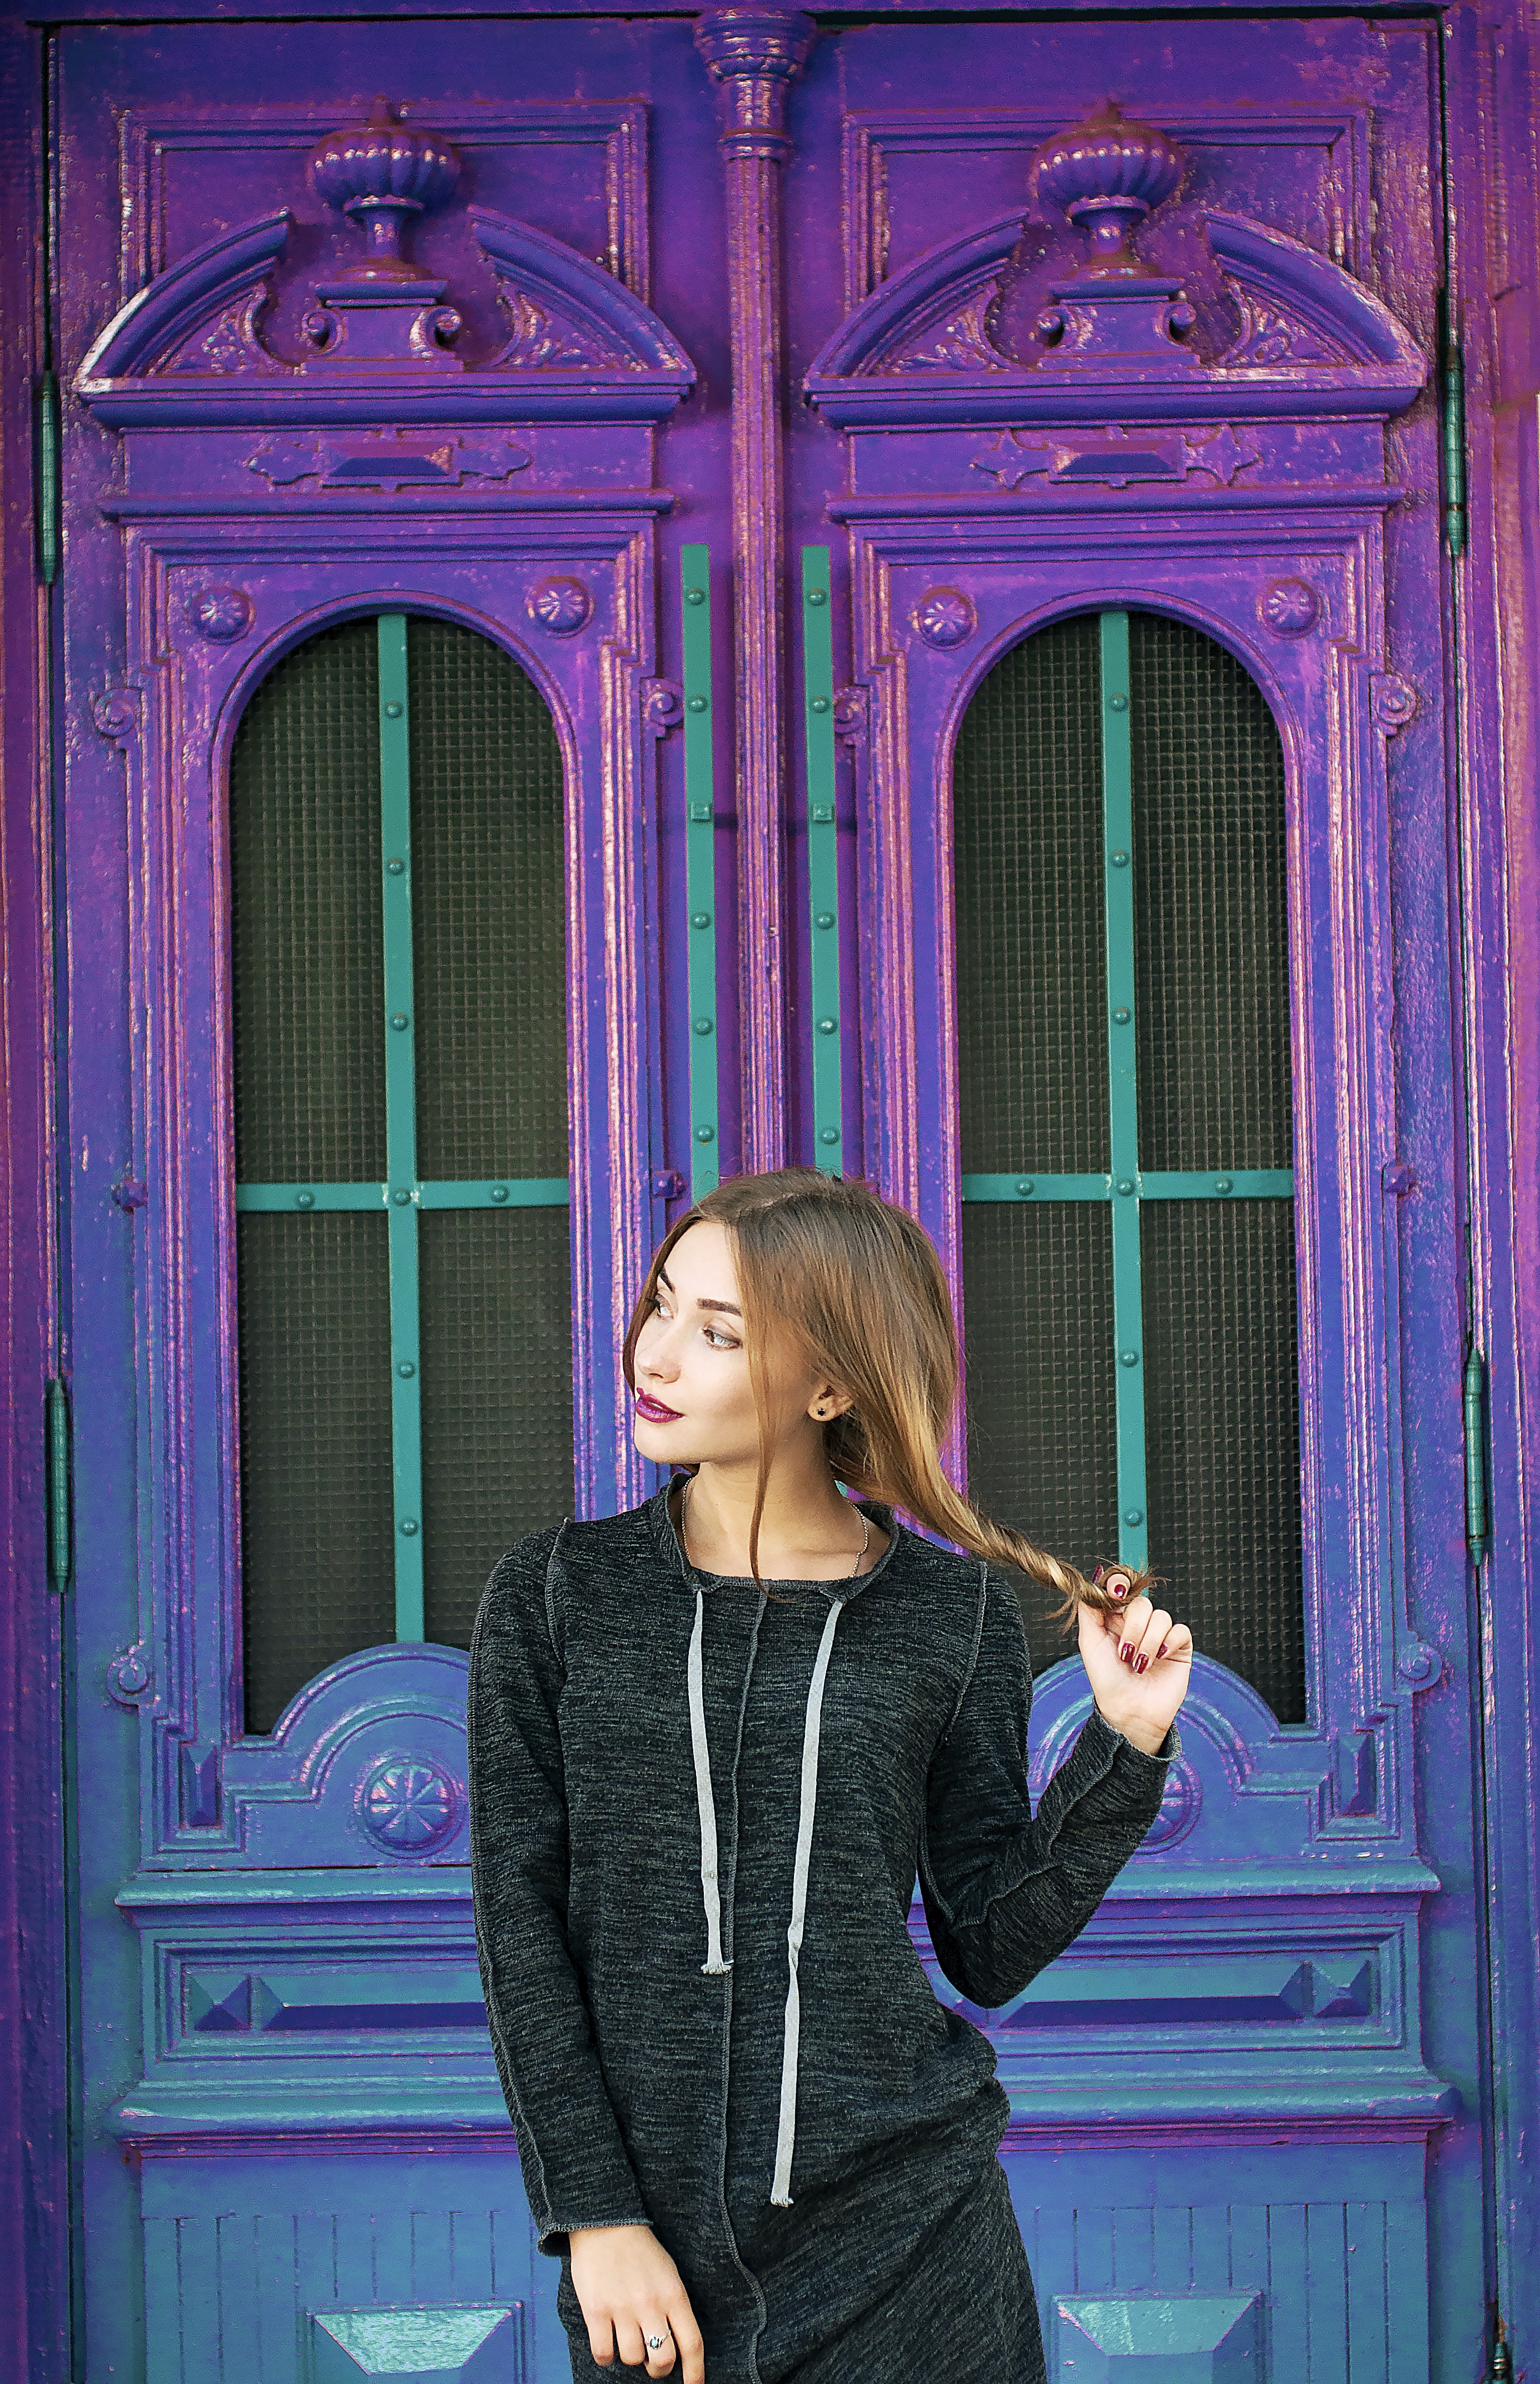 A woman holding her long hair while standing in front of a blue and purple building.